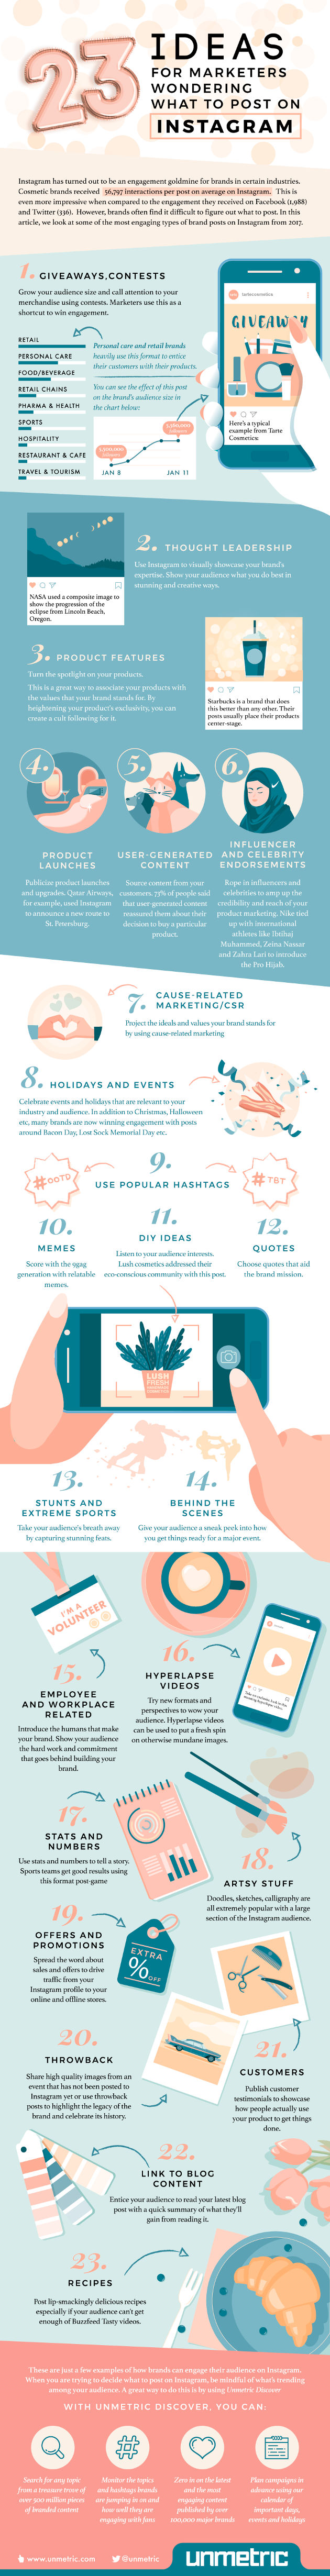 23 Instagram Ideas for Marketers Wondering What to Post